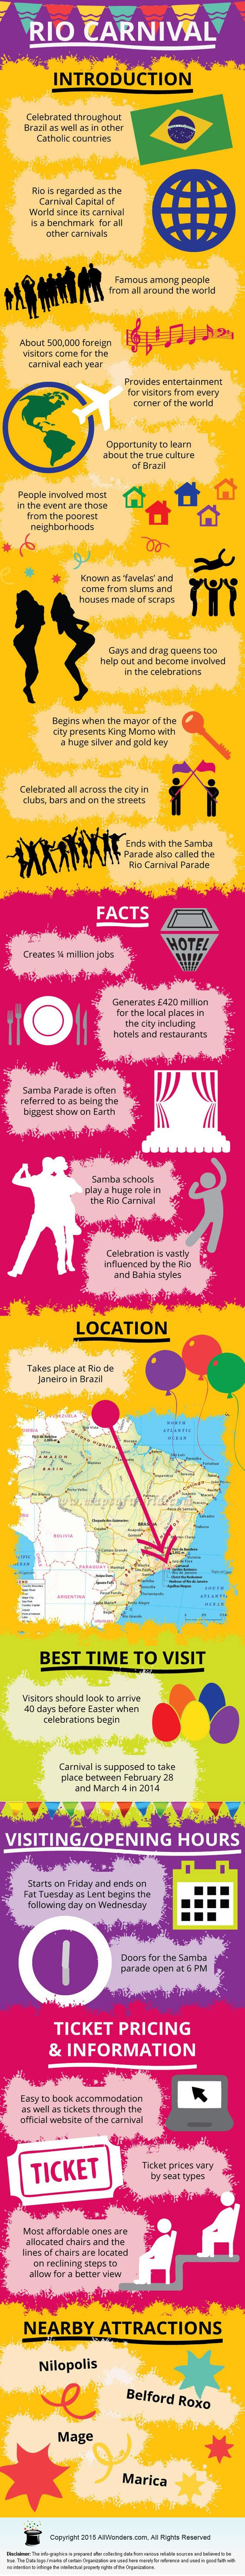 Rio Carnival infographic - Infographic showing Facts and Information about Rio Carnival in Brazil. Find out about ticket prices, hours, when to go, where is it and much more with an interesting infographic.